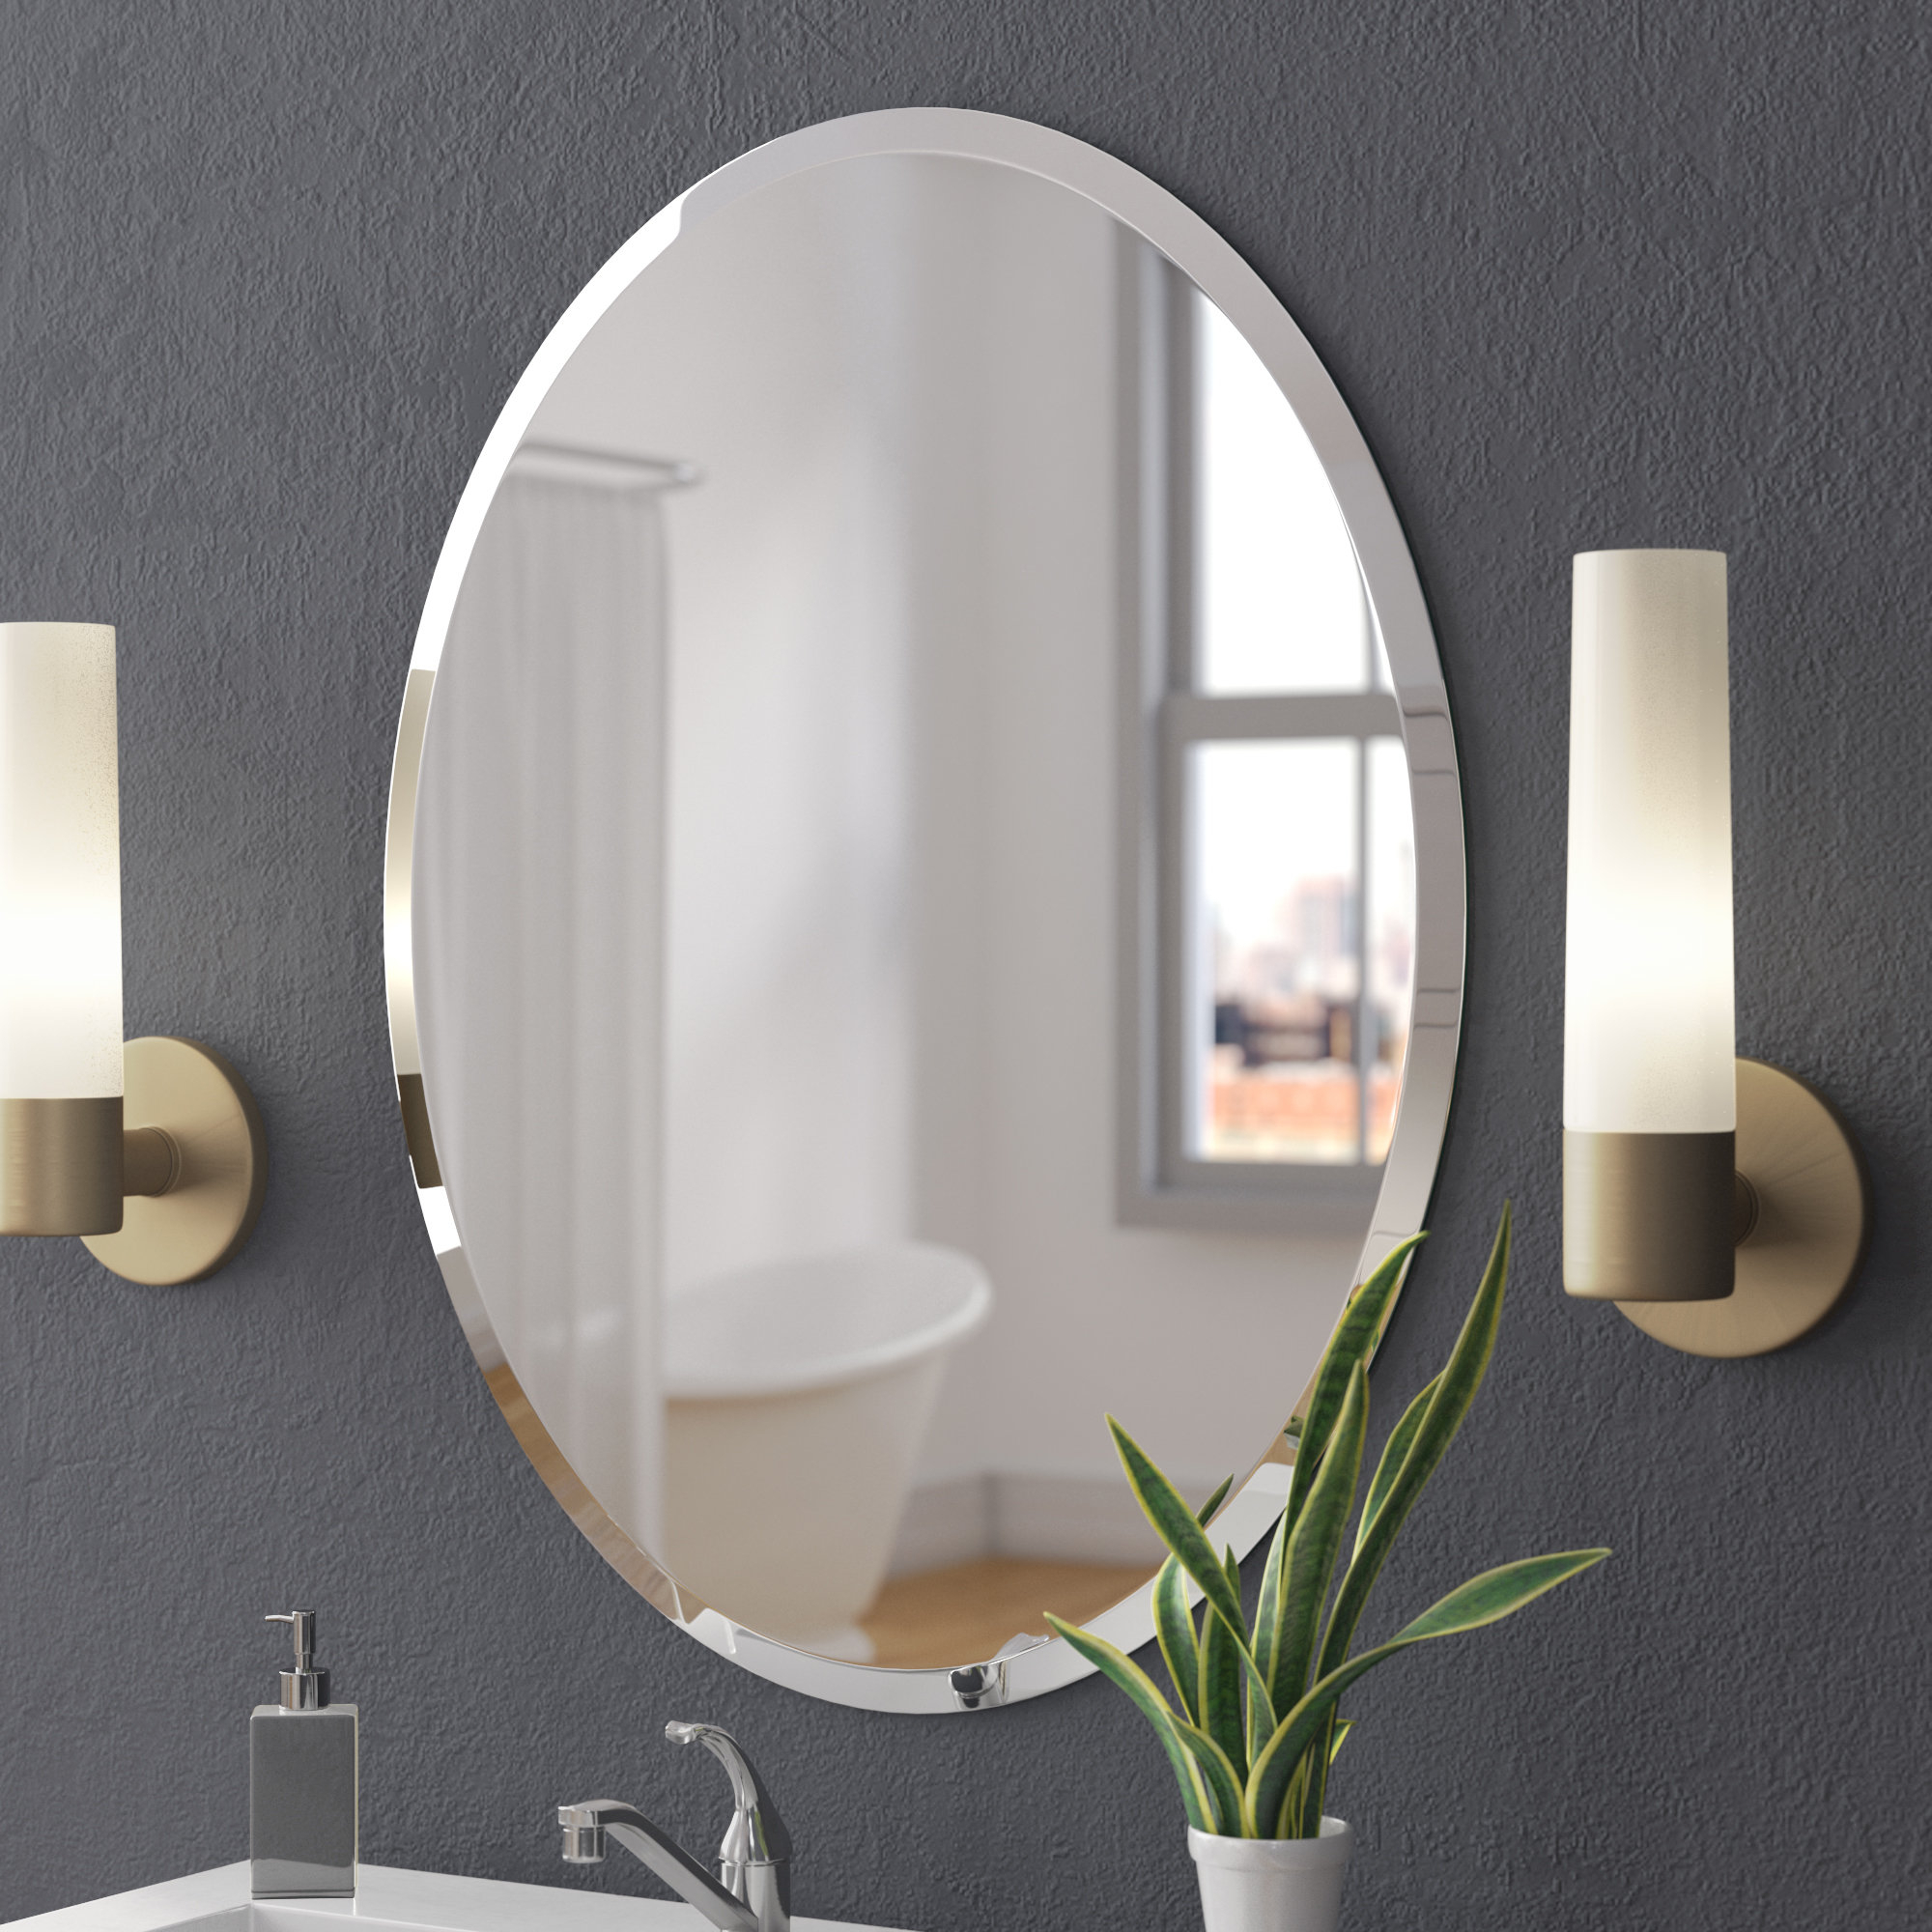 Newest Callison Oval Bevel Frameless Wall Mirror With Regard To Large Frameless Wall Mirrors (Gallery 11 of 20)